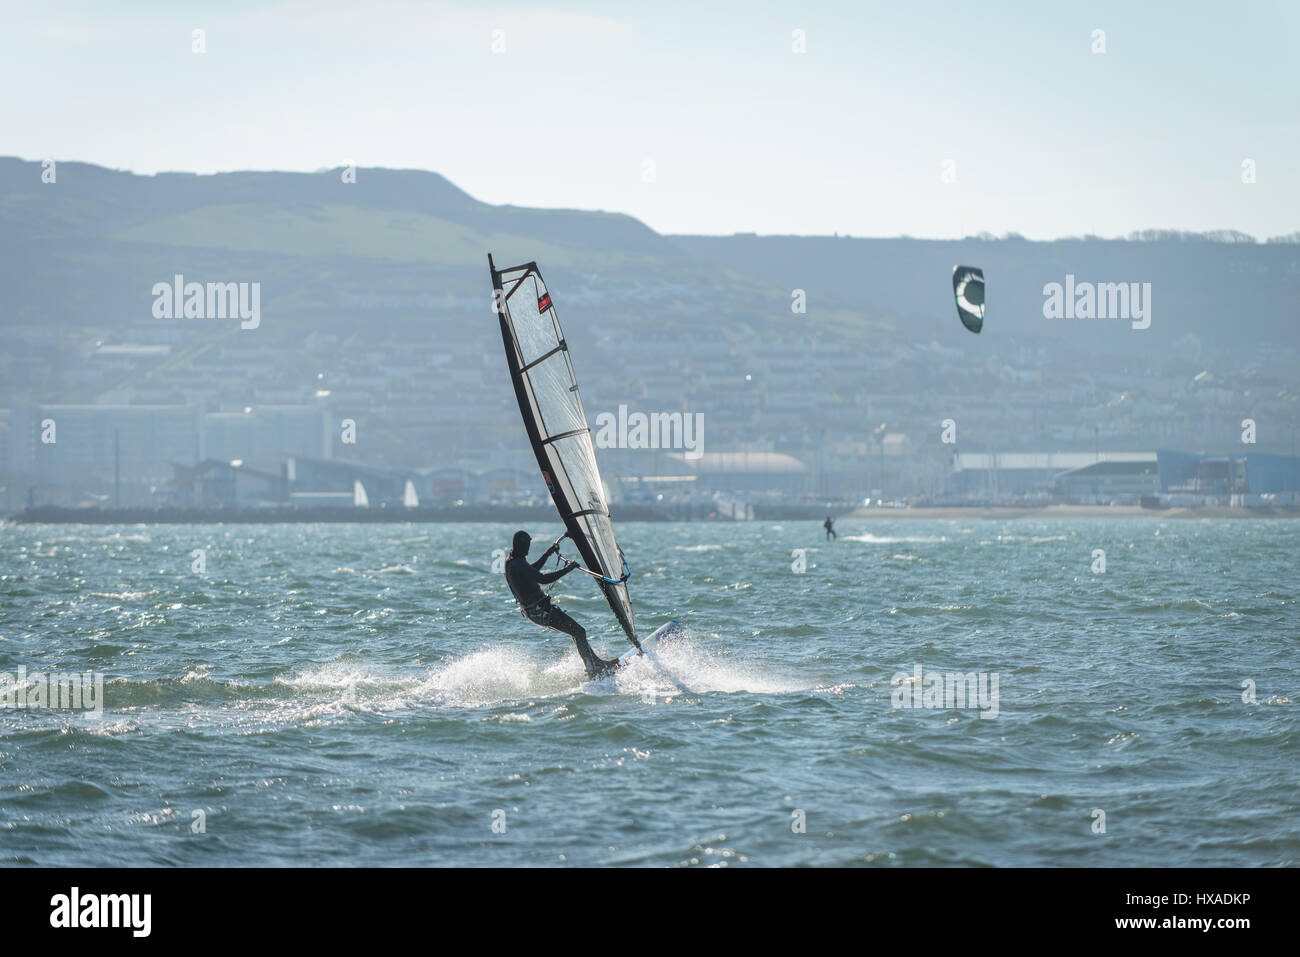 Portland Harbour, Dorset, UK. 26th March 2017. A man wind surfing on a crisp windy sunny day at Portland Harbour - Stock Image